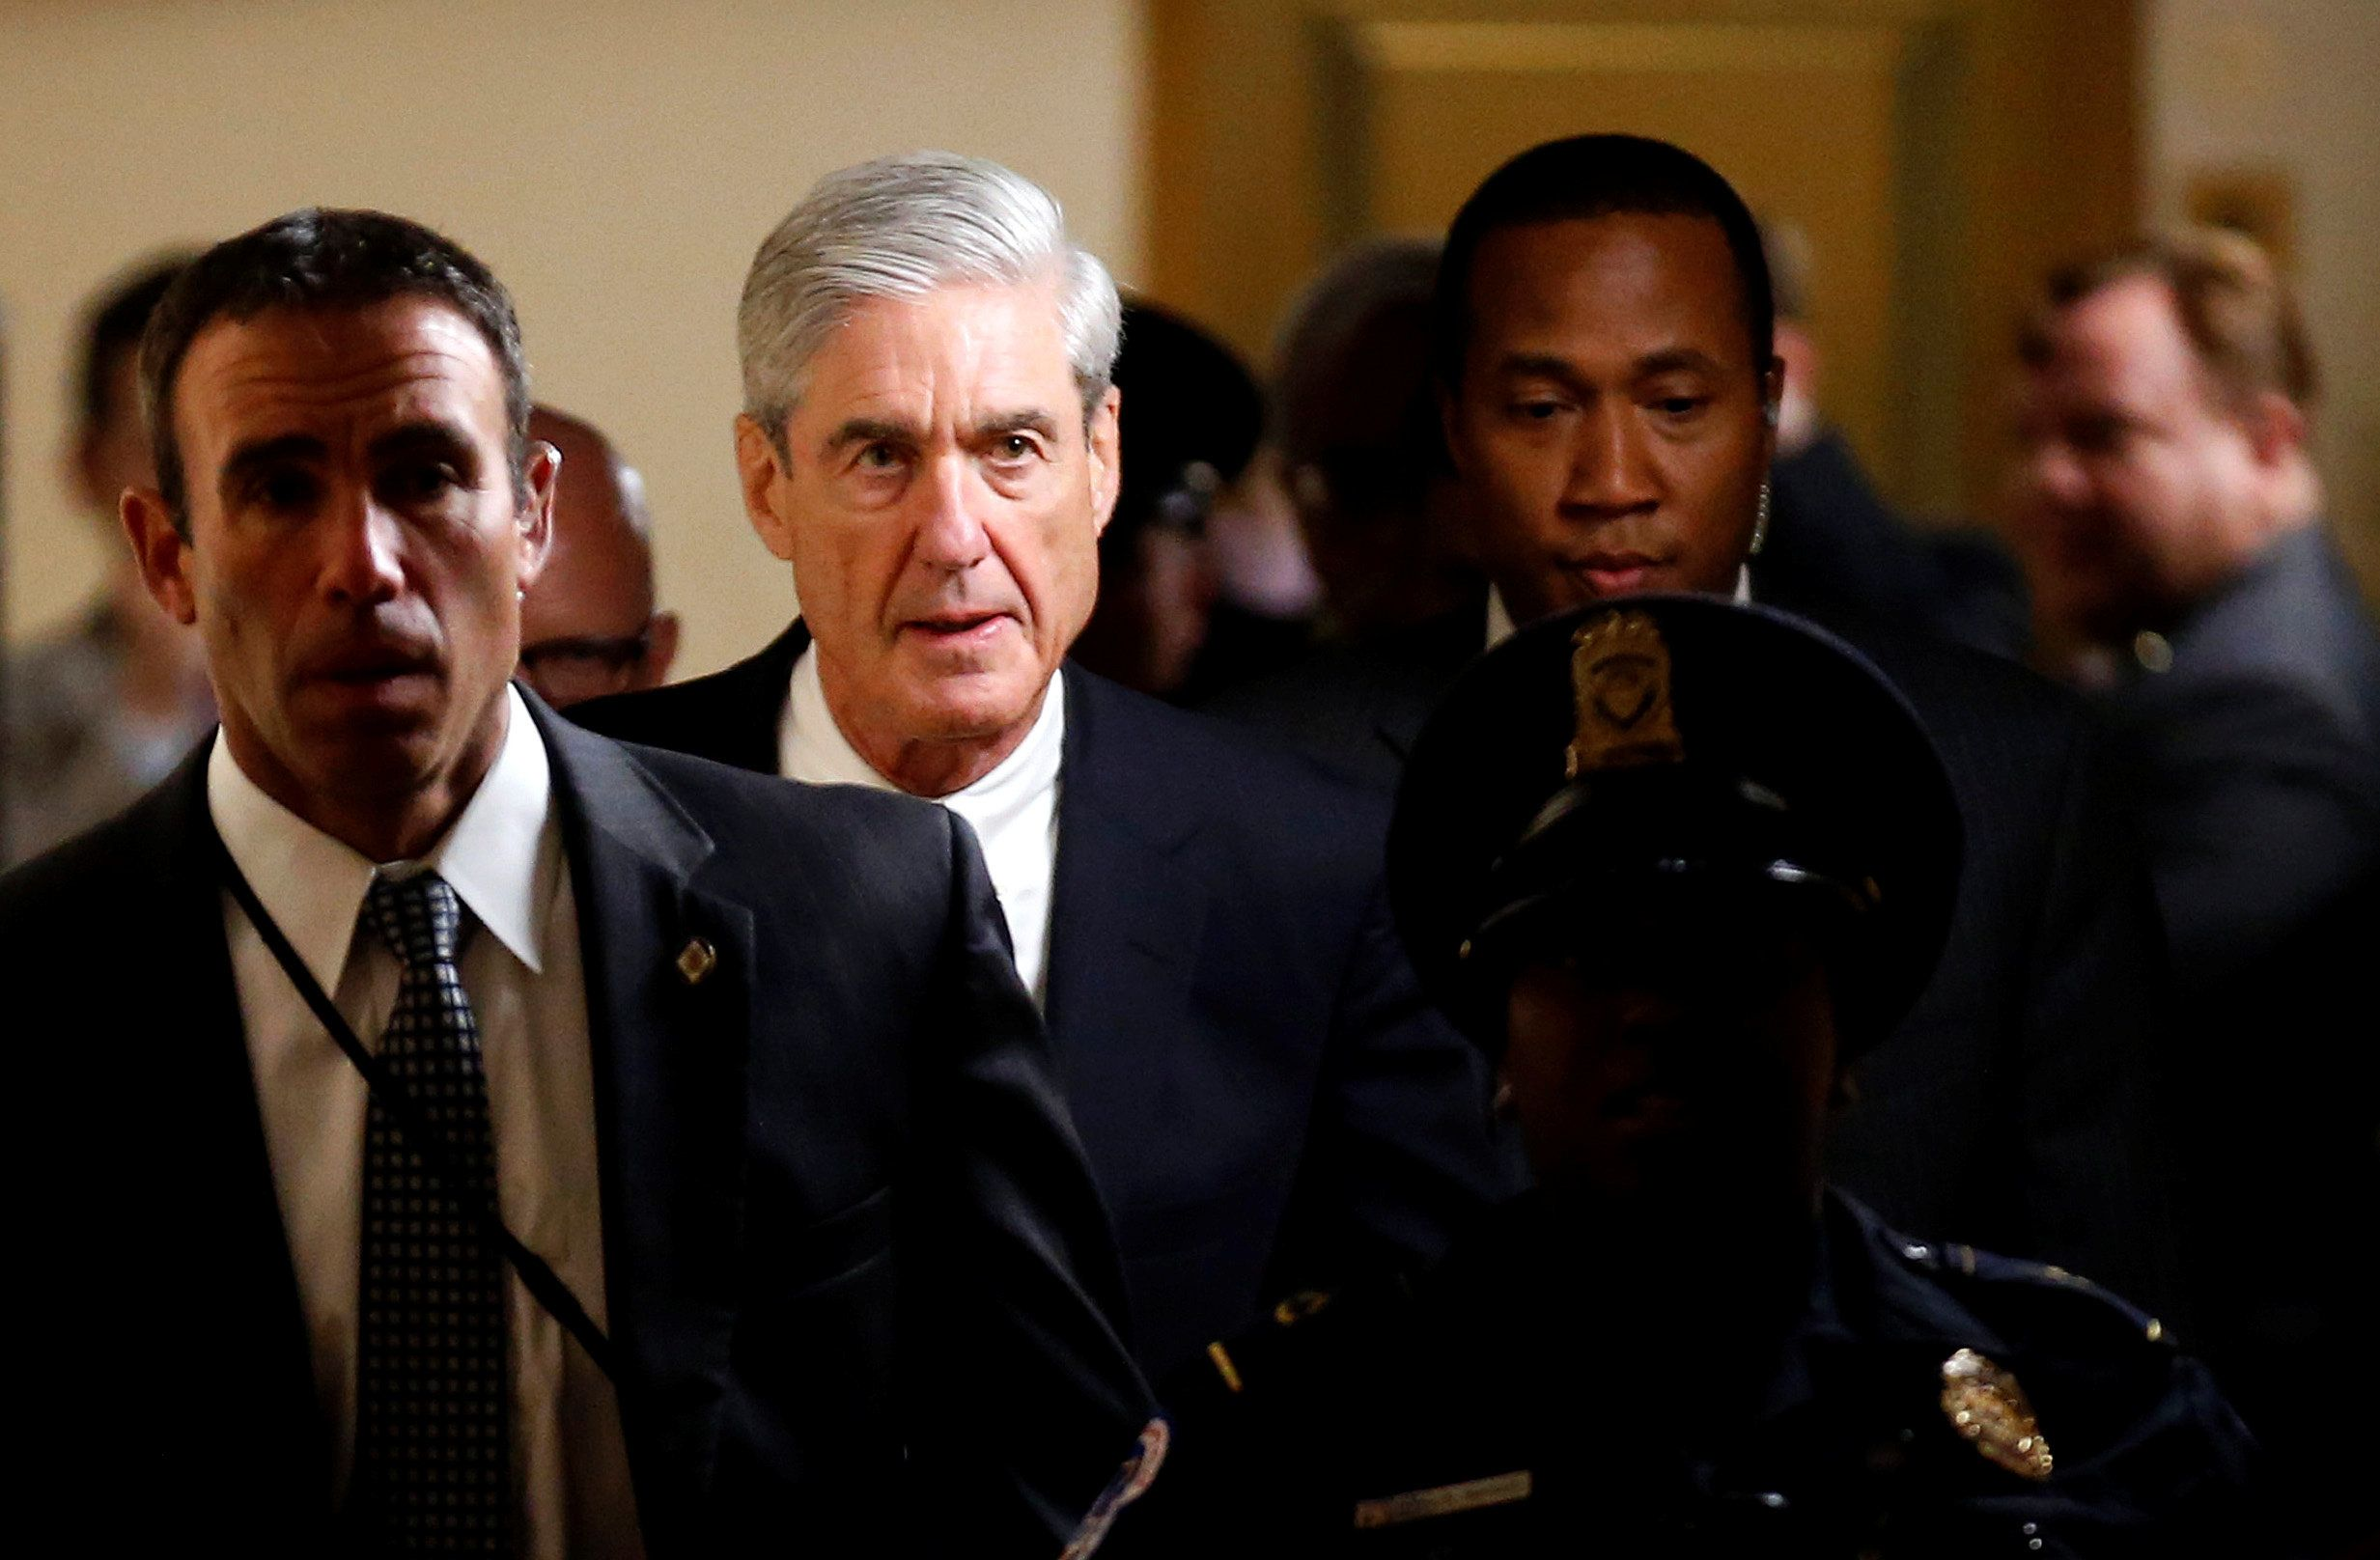 Special counsel Robert Mueller leaves the Capitol after briefing members of the U.S. Senate about his investigation on J